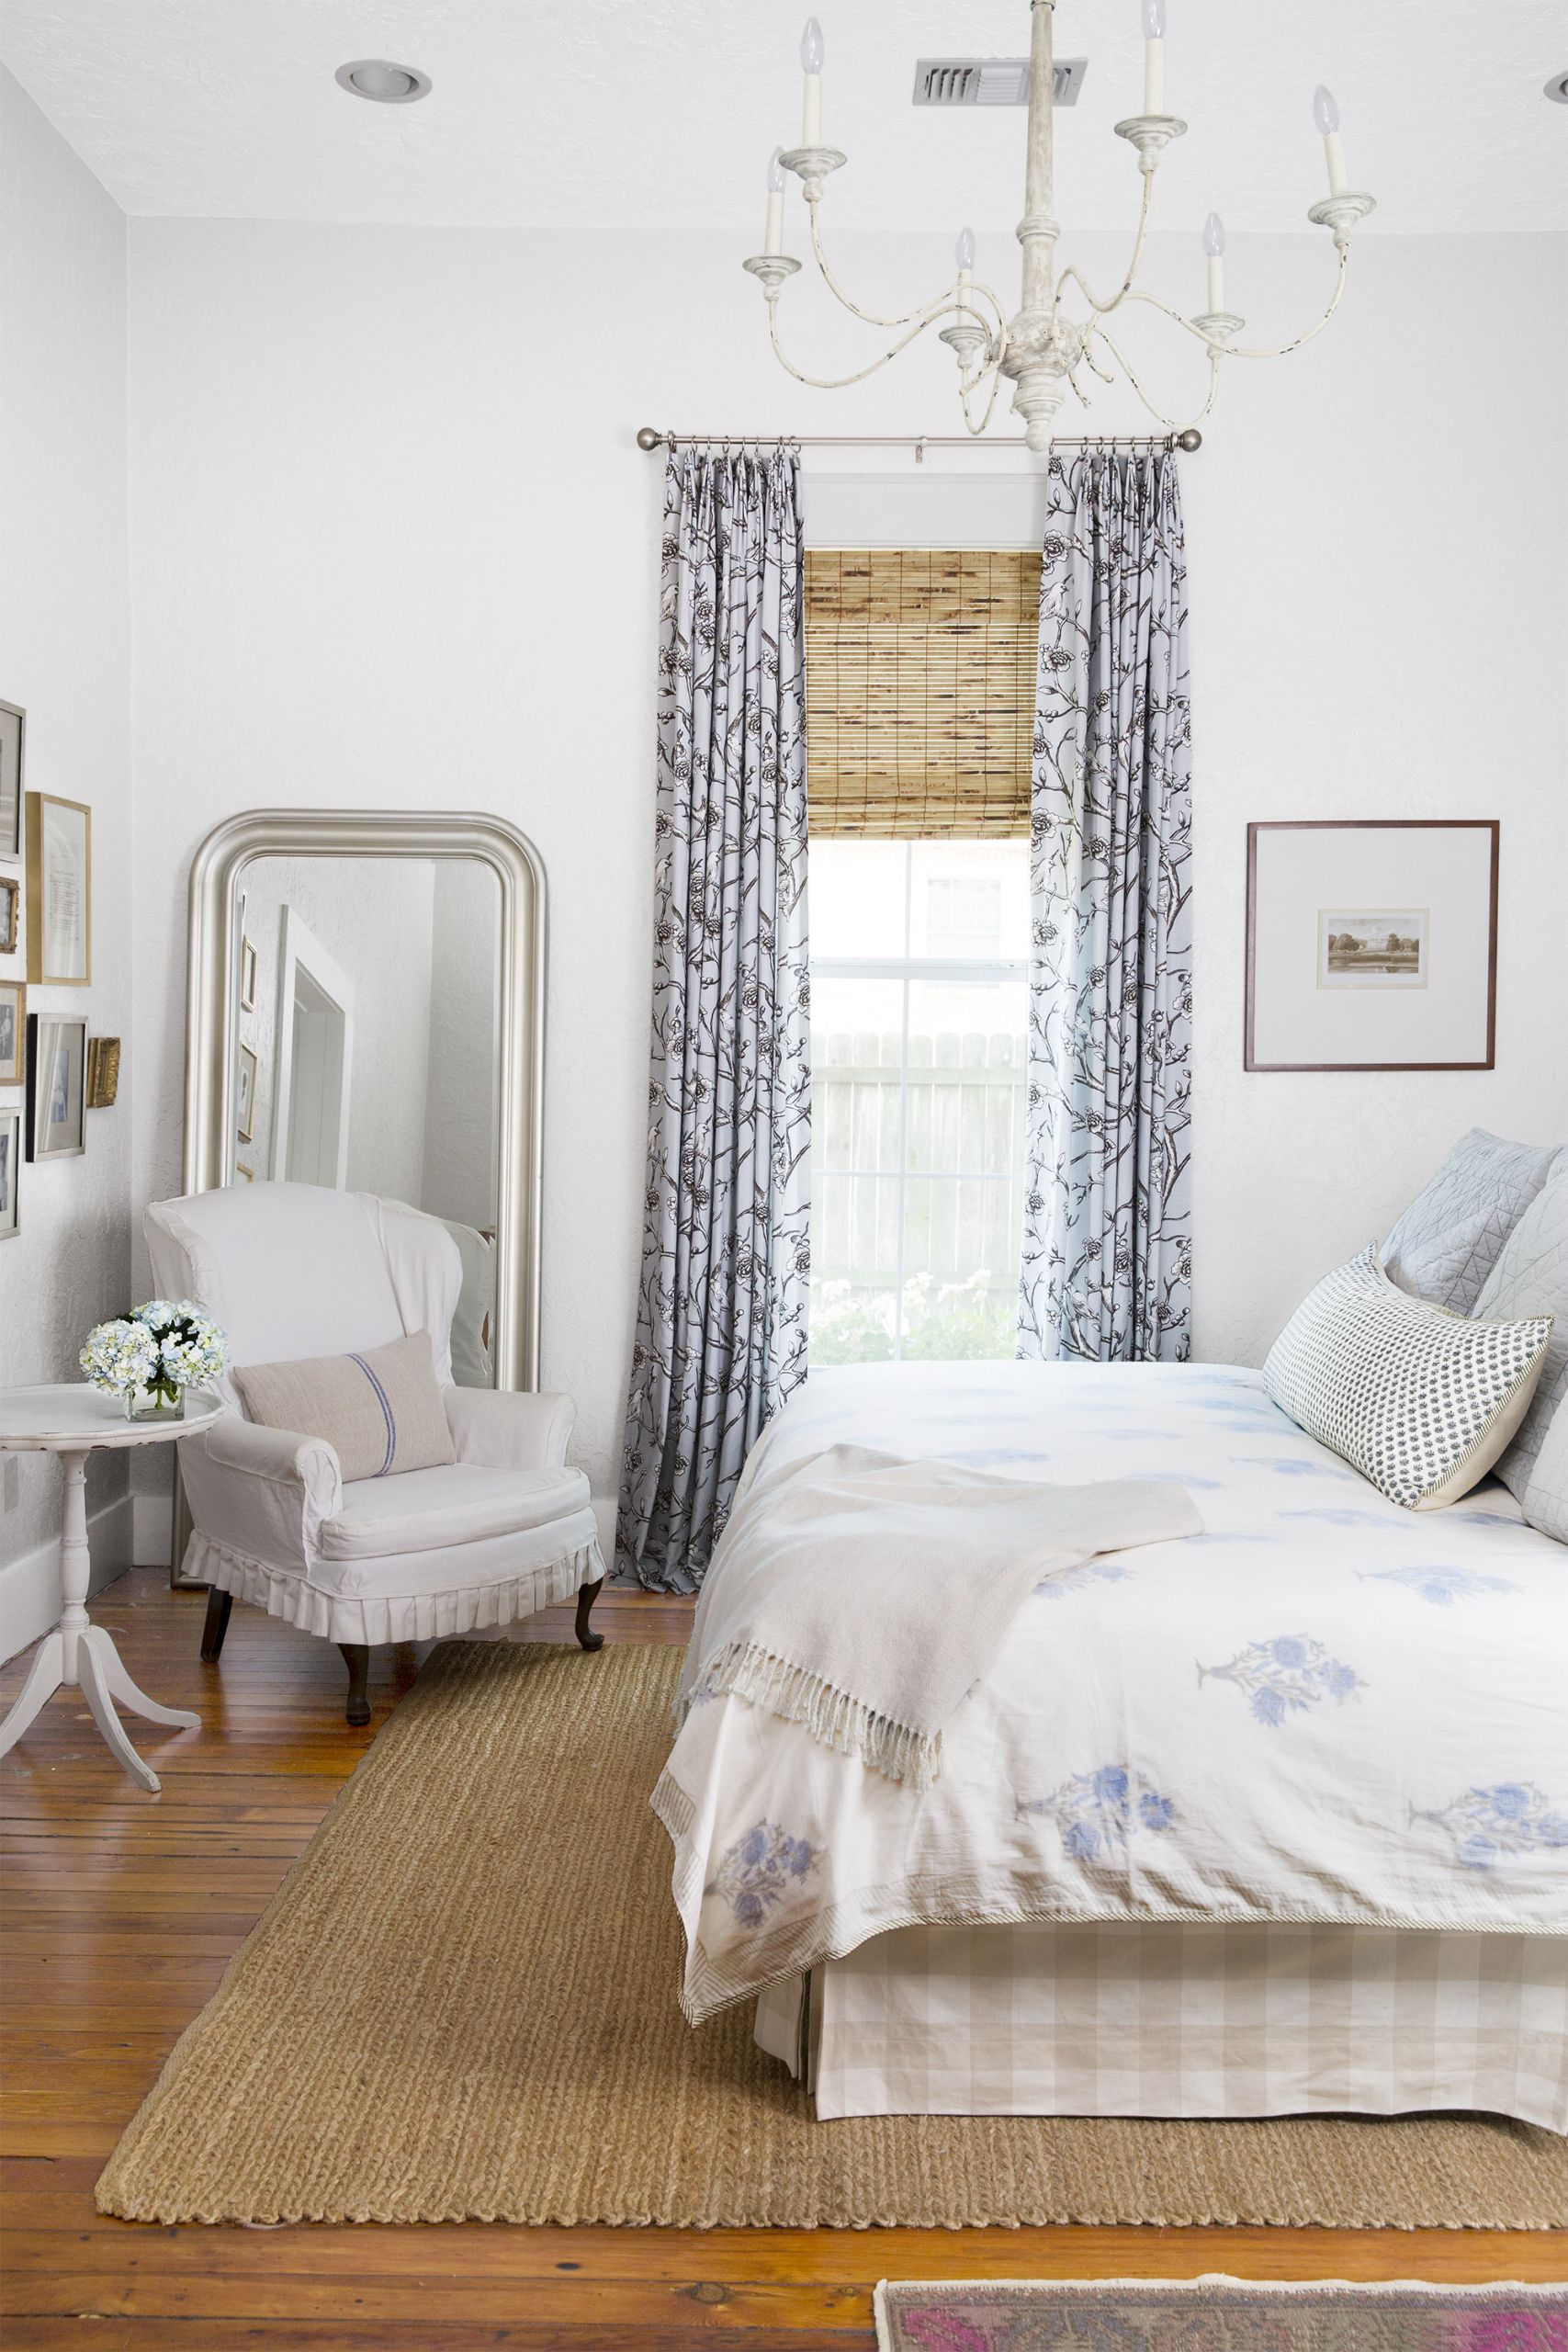 Wall Pictures For Bedroom  28 Best White Bedroom Ideas How to Decorate a White Bedroom